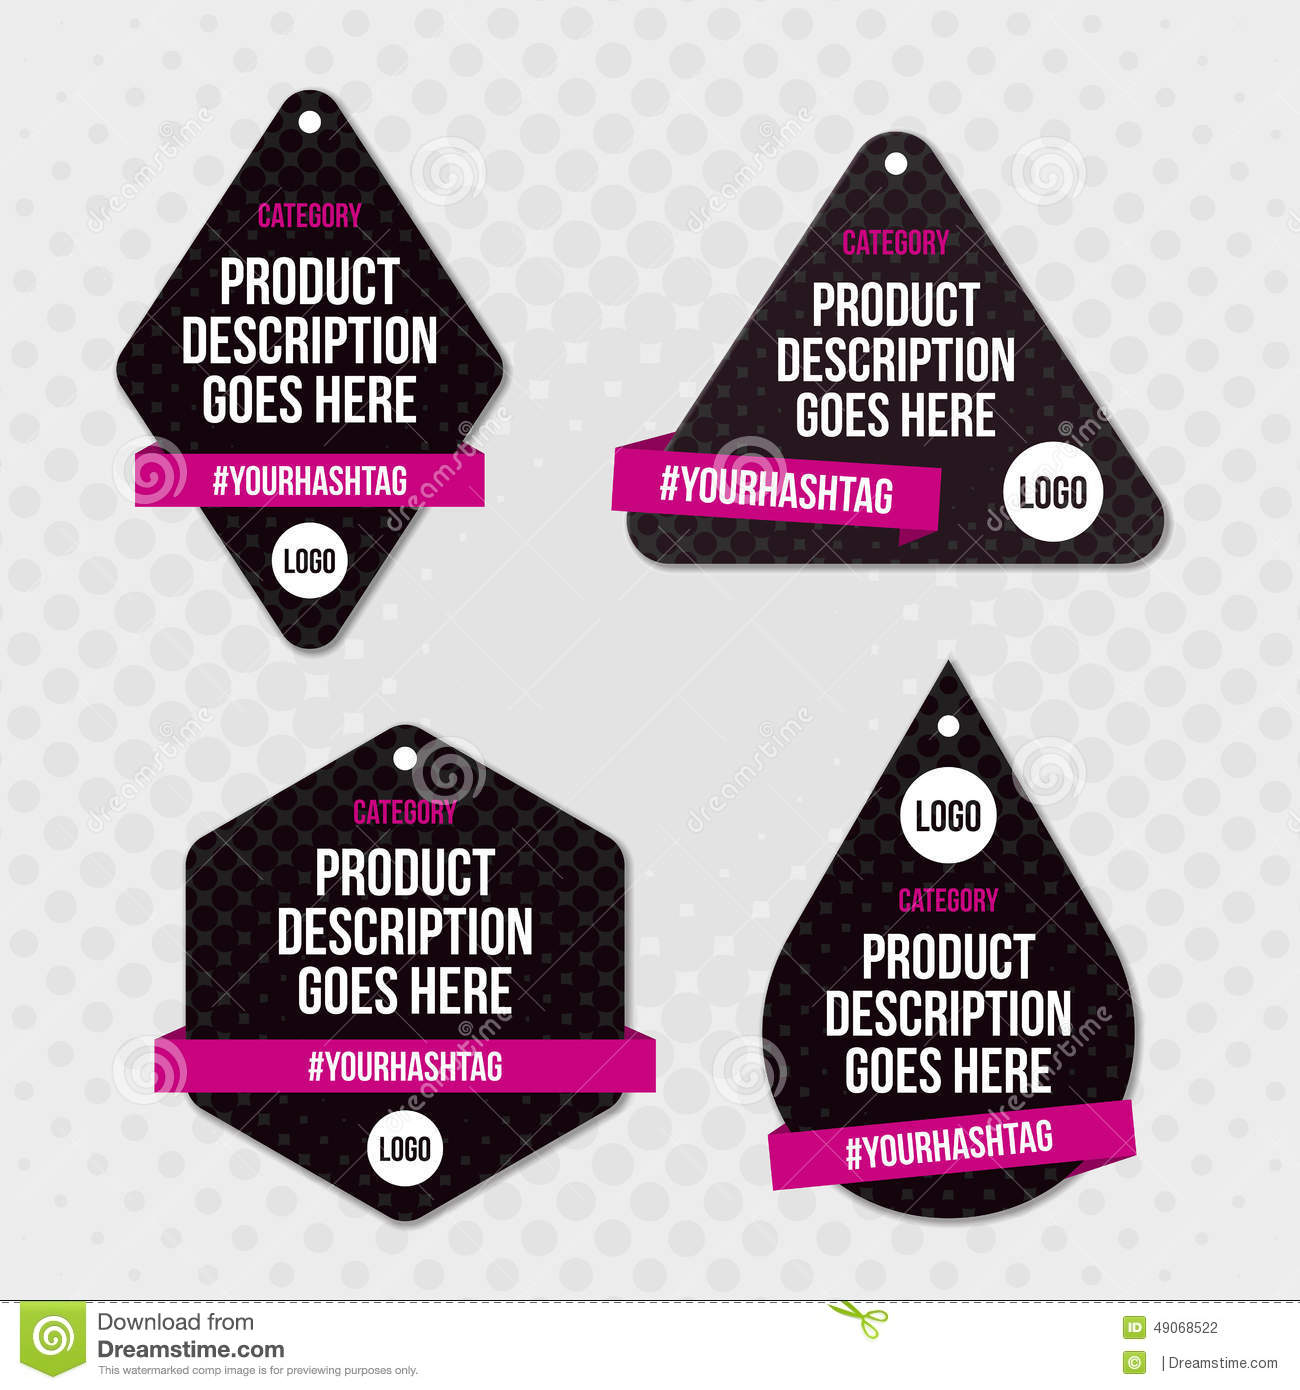 Product label swing tag design